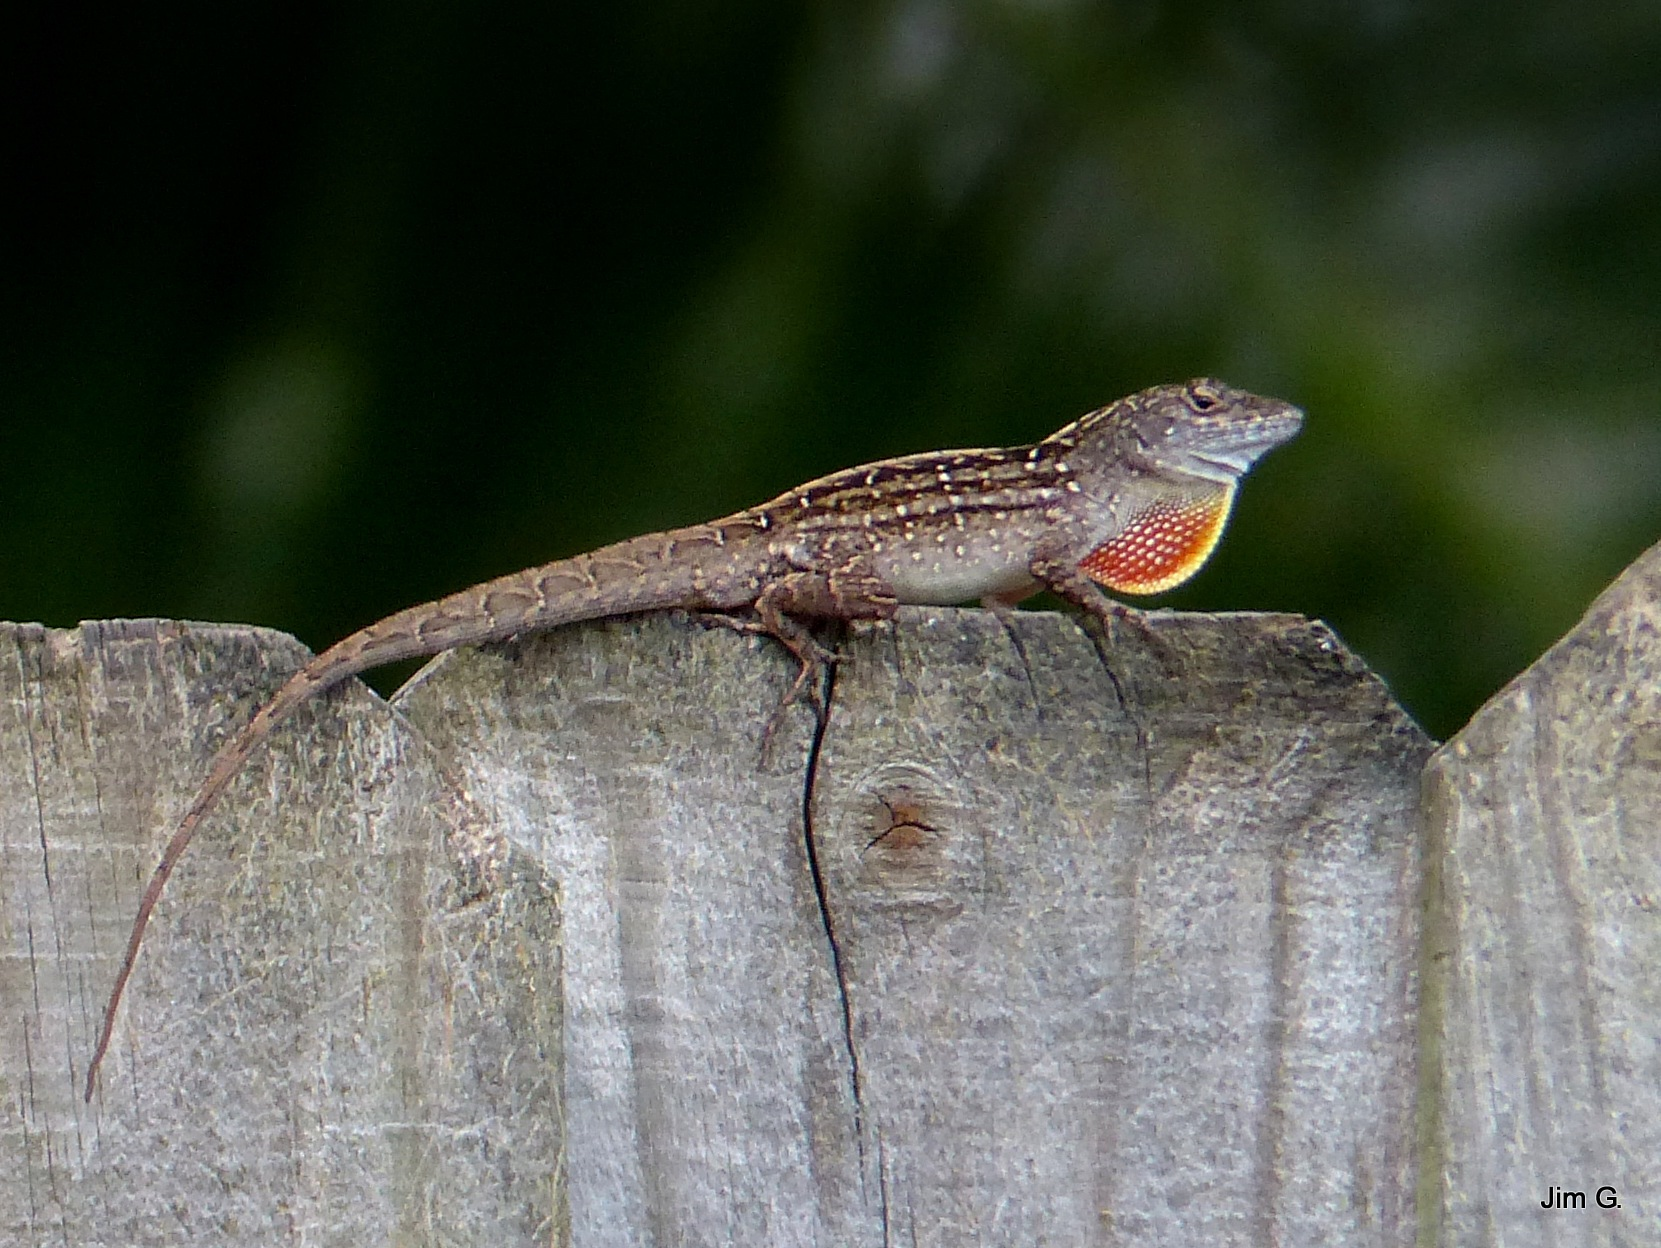 Lizard on Fence by Jim Graham